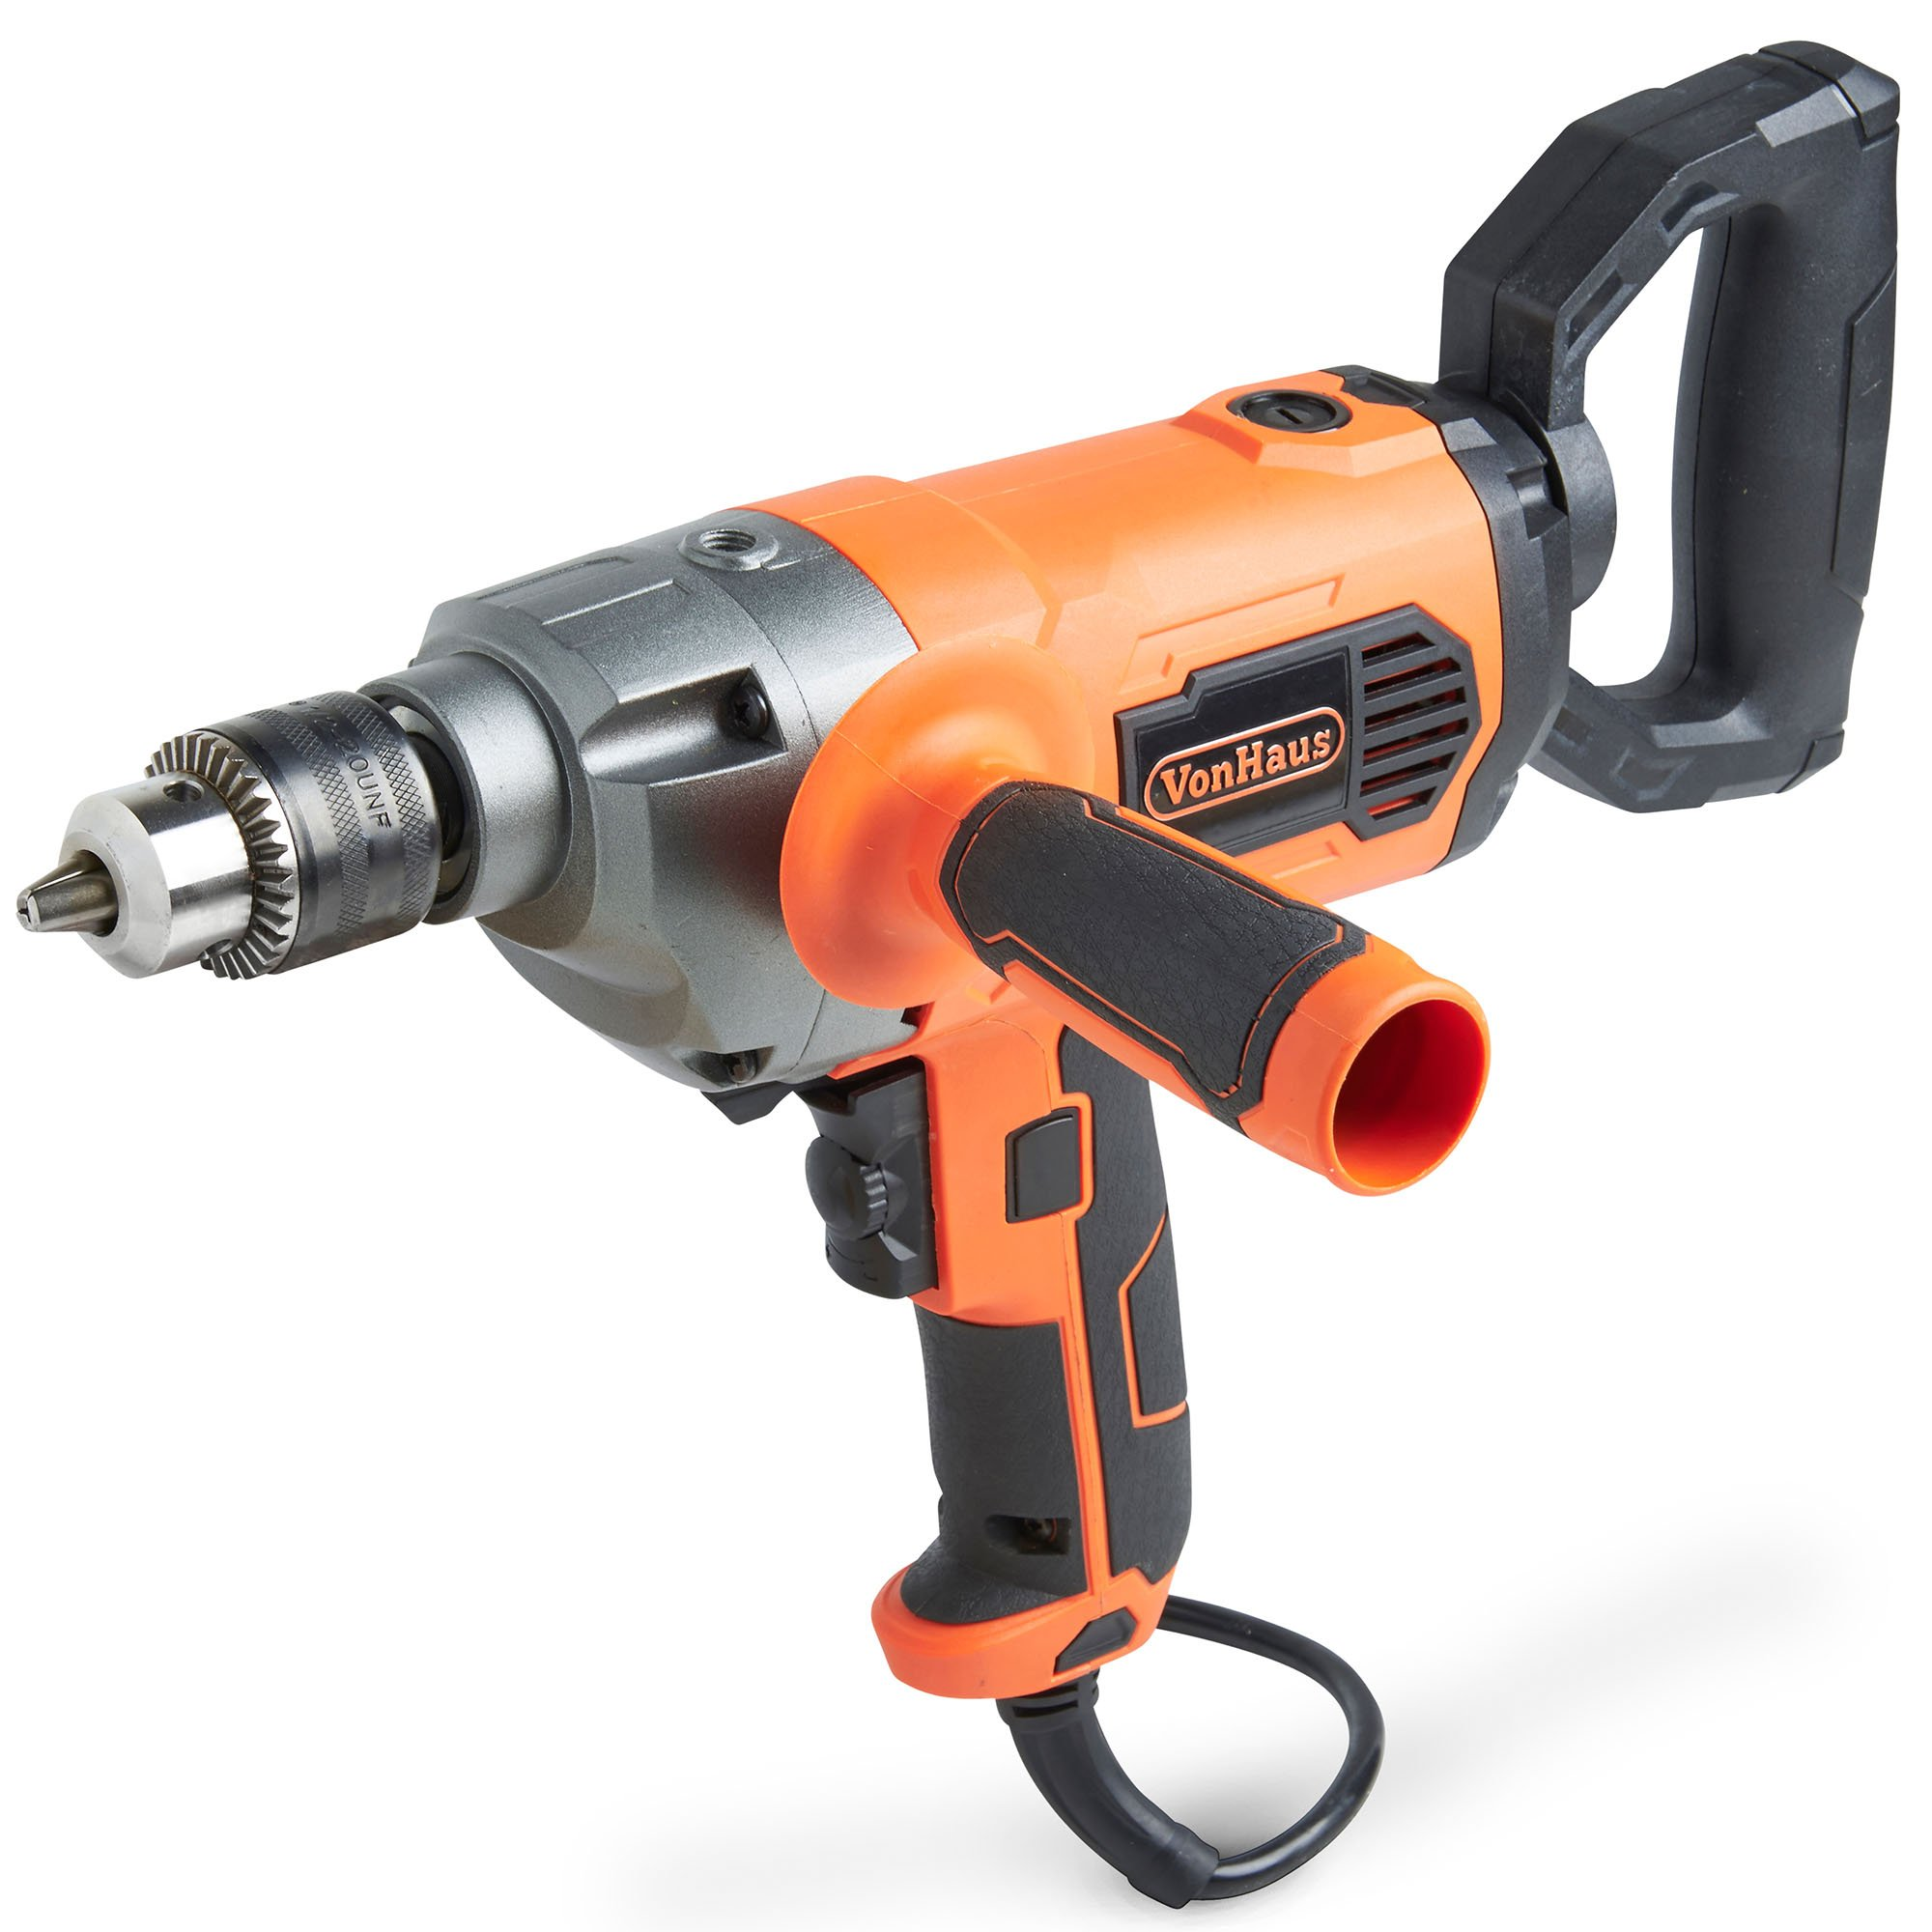 """VonHaus 10 Amp 1/2"""" Heavy Duty Drill Mud Mixer with Spade Handle and Variable Speeds For Drilling and Mixing"""